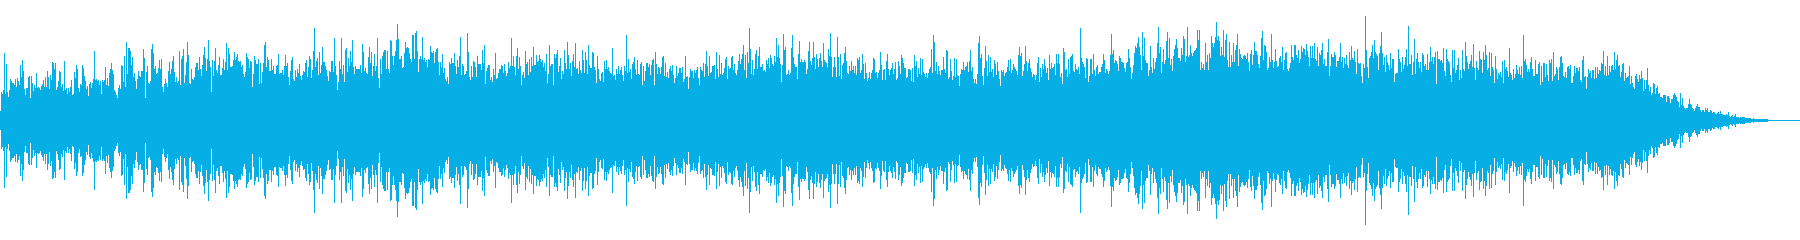 Noise sound source 15 that seems to appear in horror films's reproduced waveform